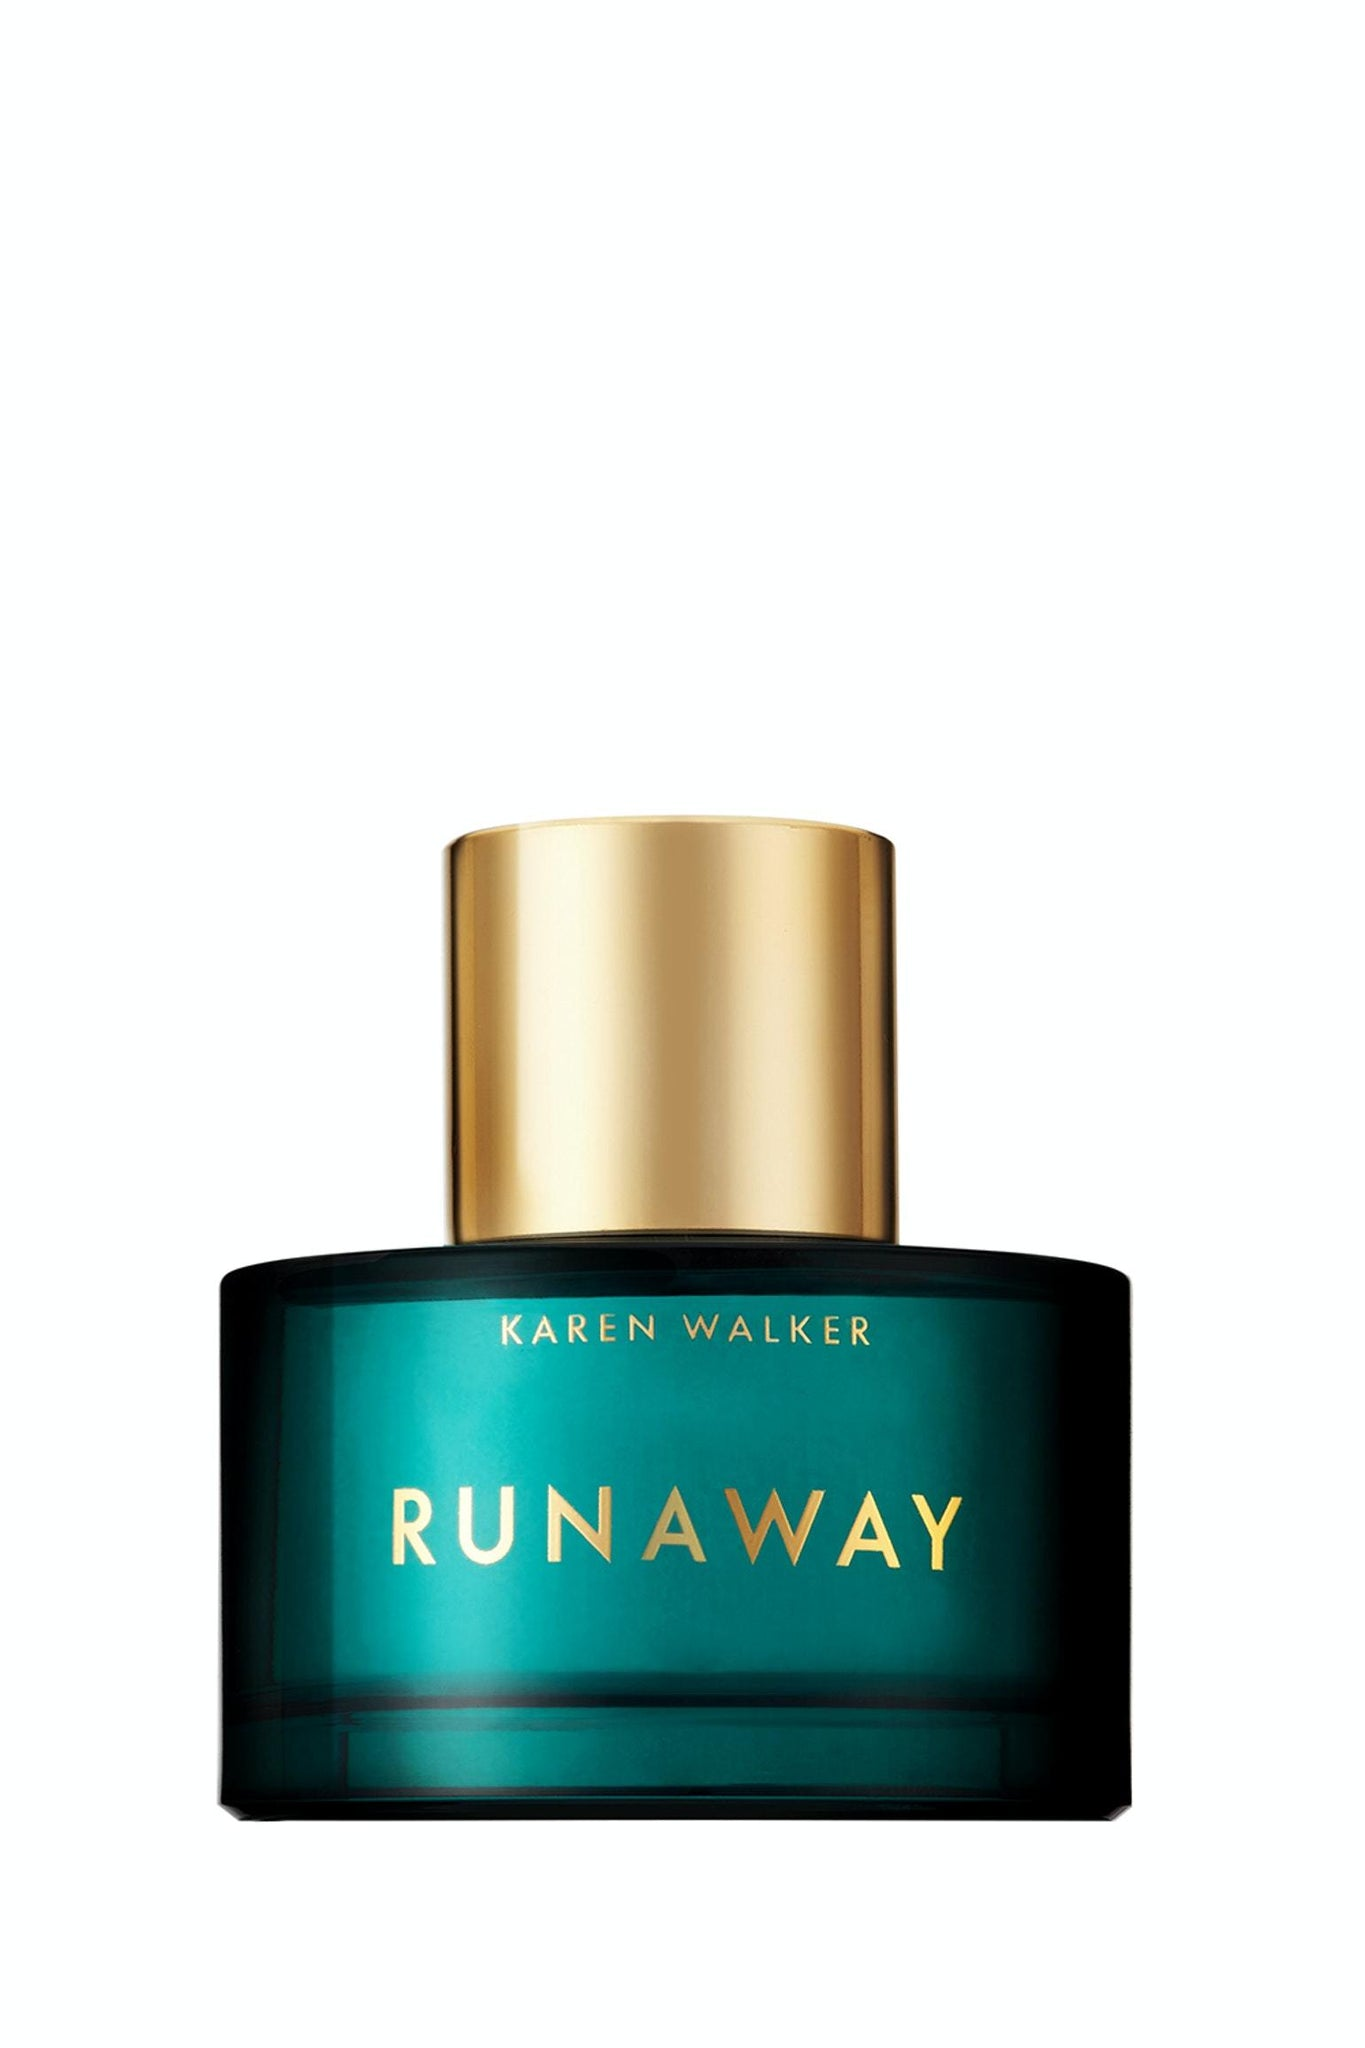 Karen walker runaway edp 60ml